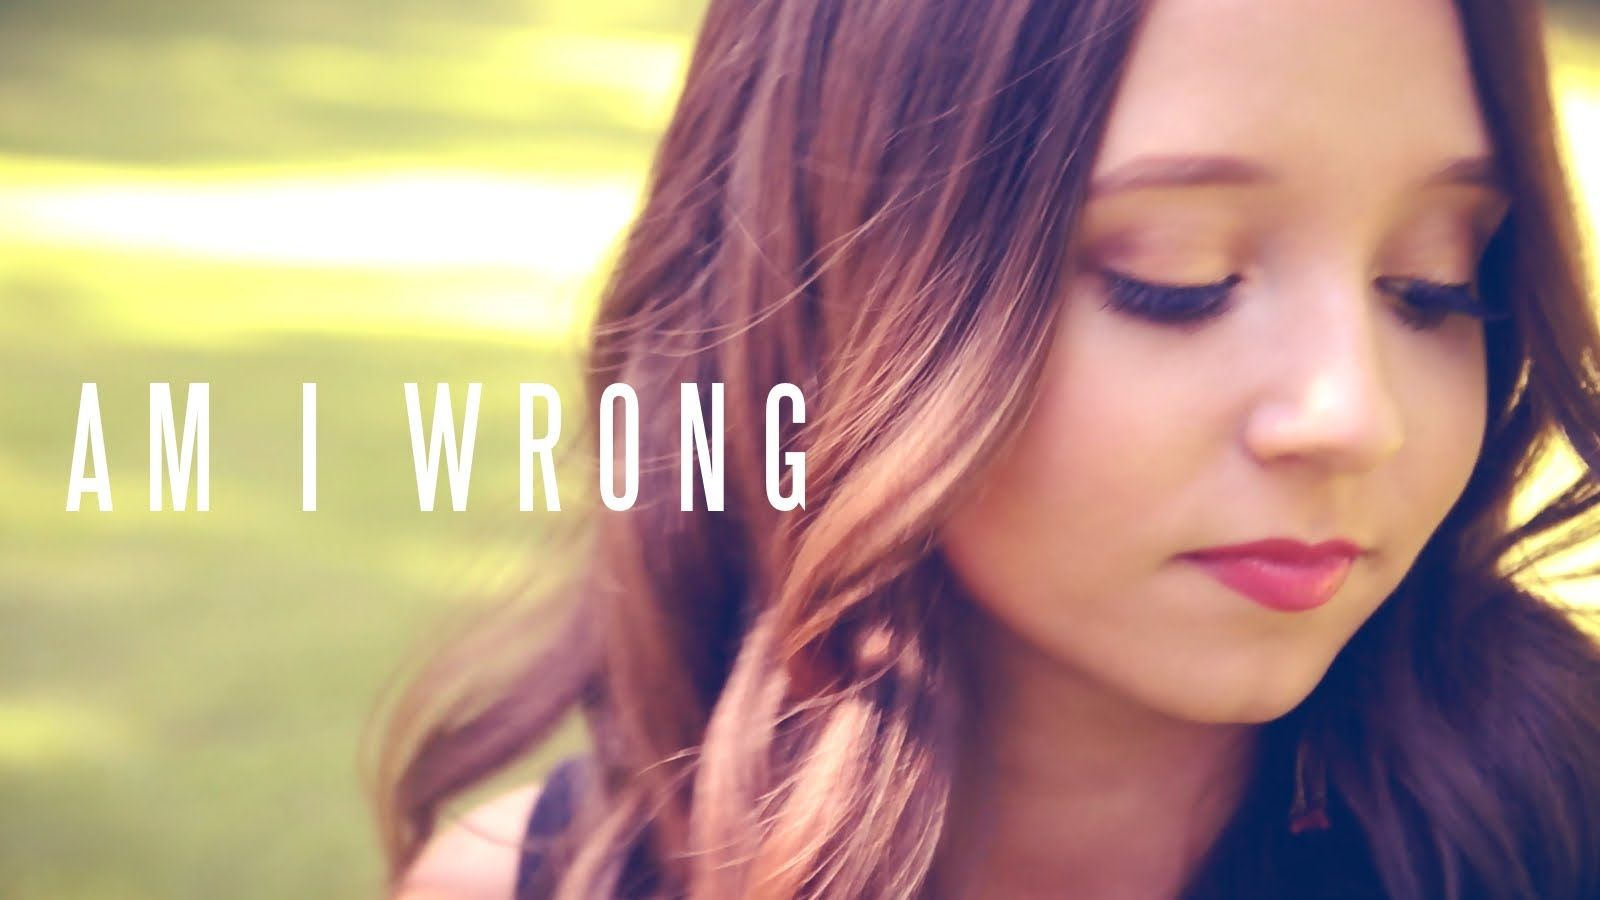 Am I Wrong - Nico and Vinz (Official Video Cover by Ali Brustofski) She is awesome